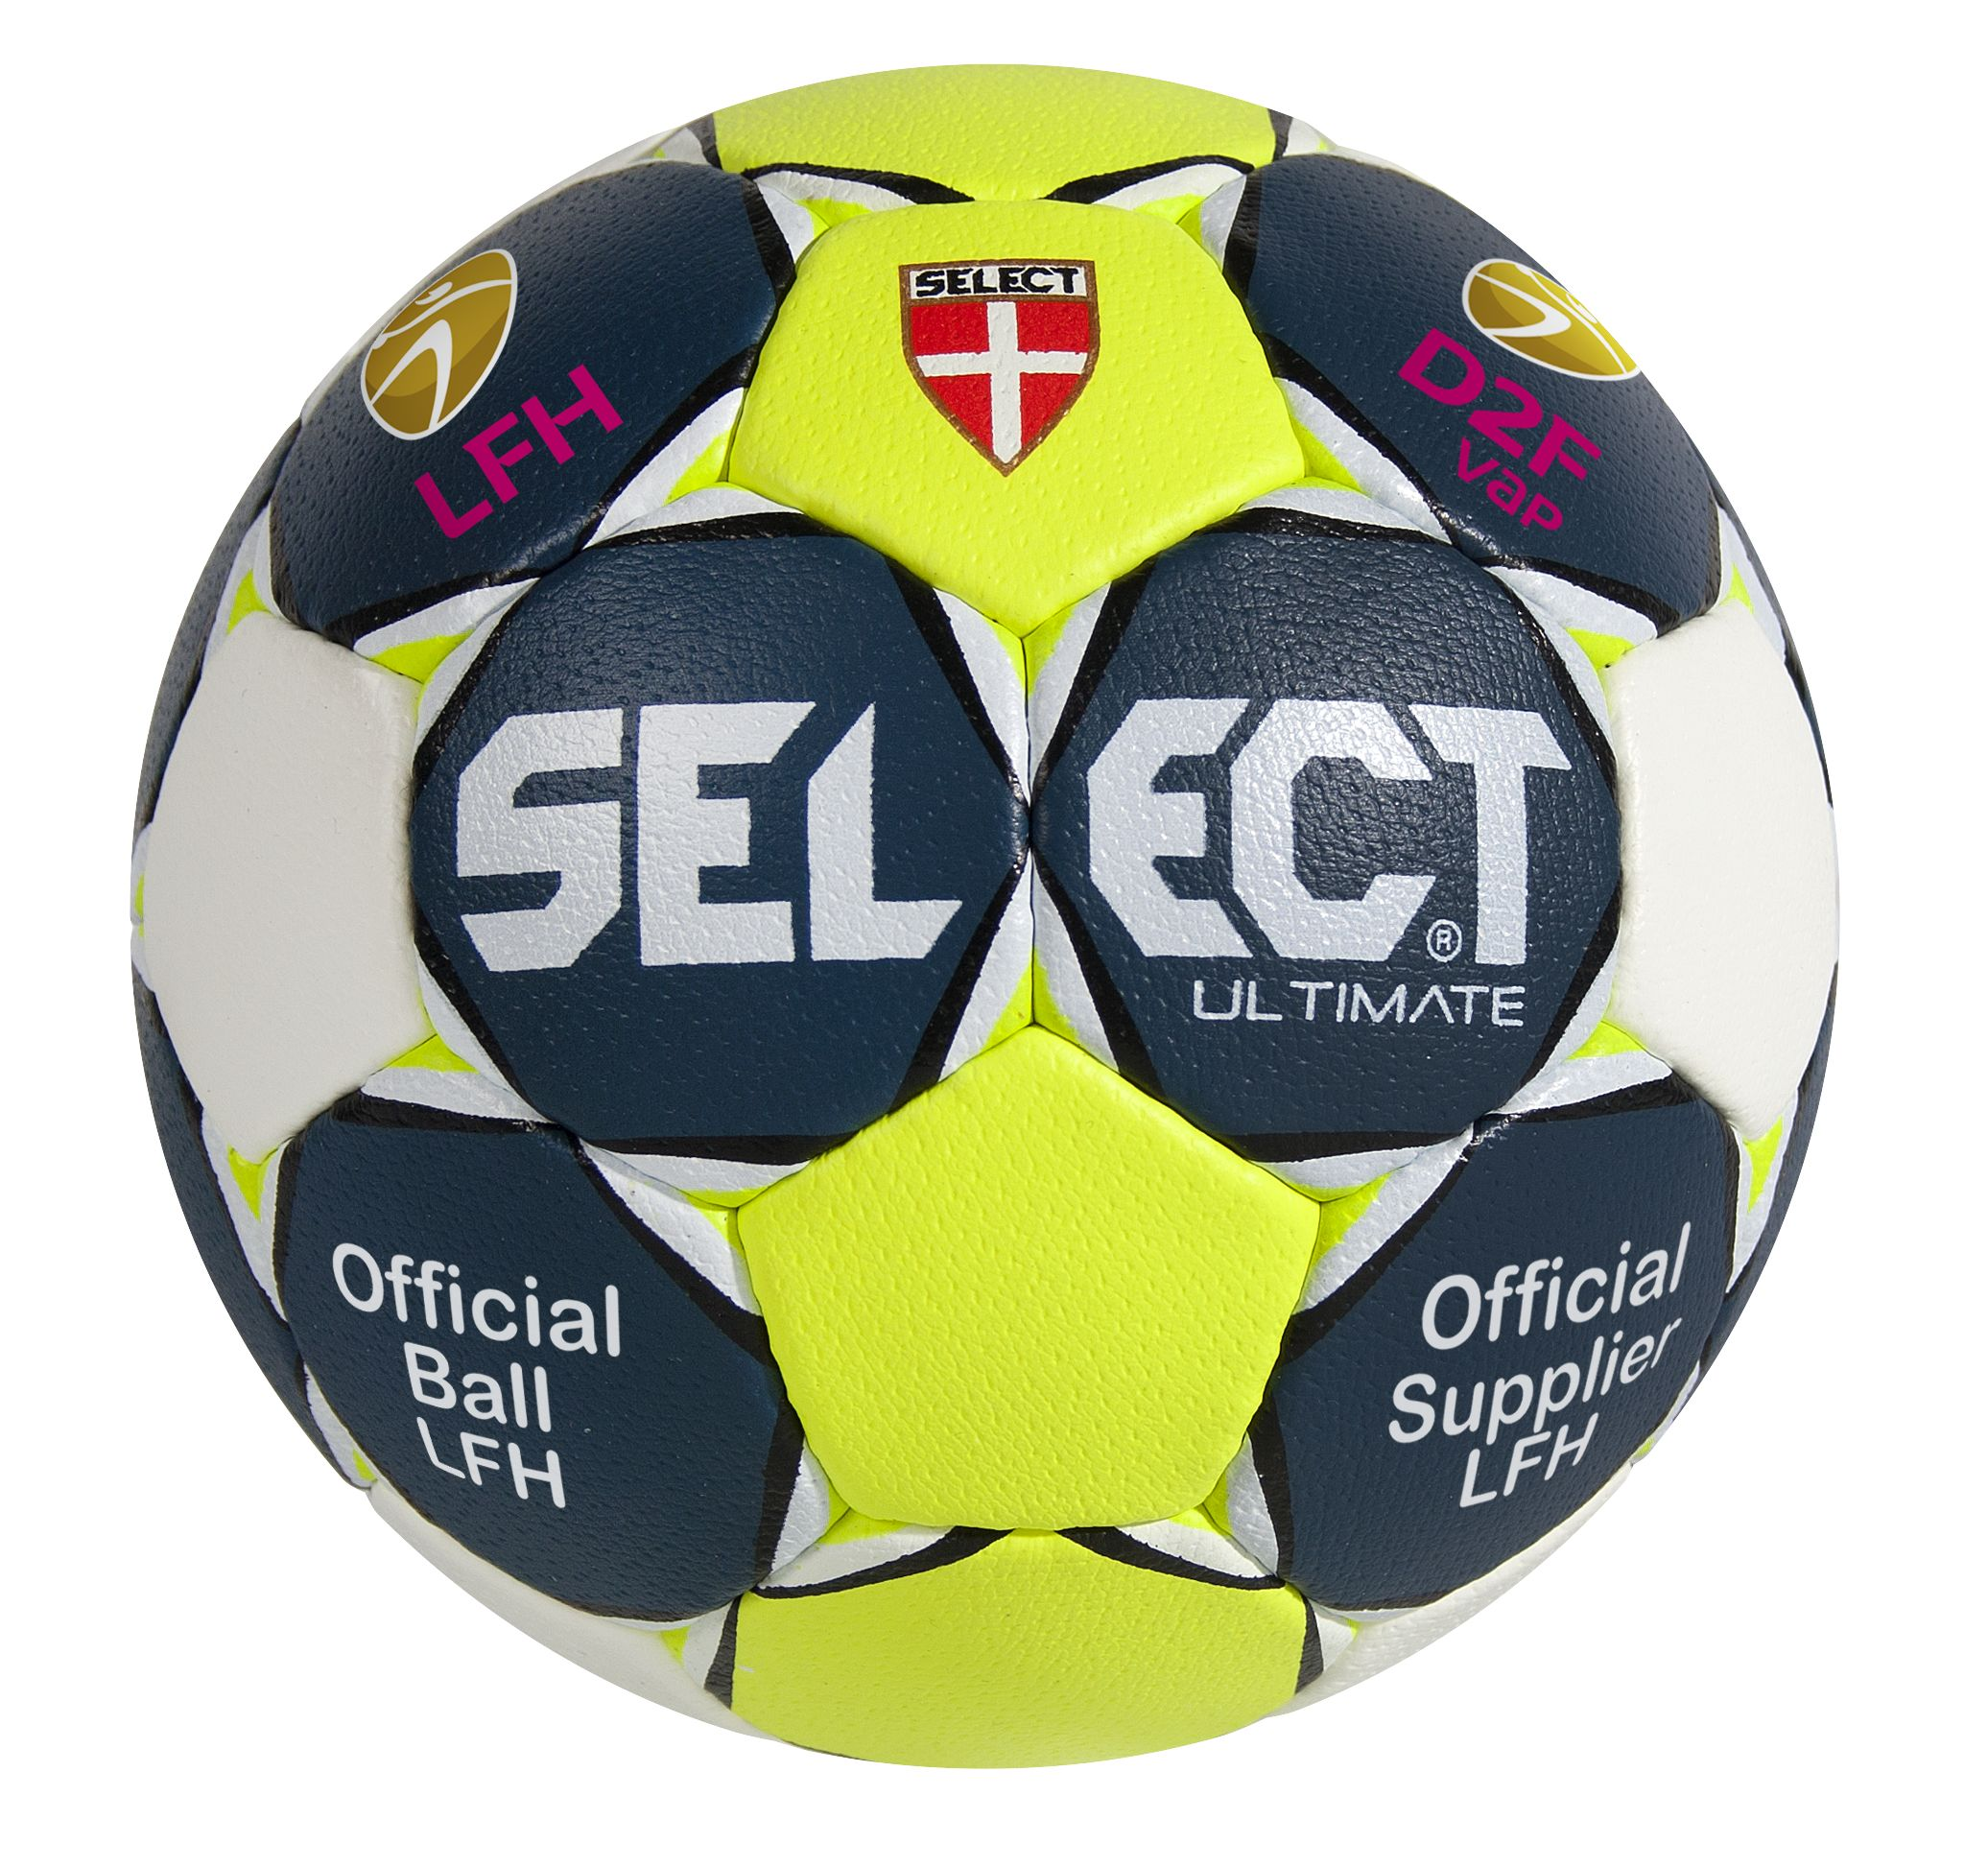 photo ballon Select LFH 2016-17